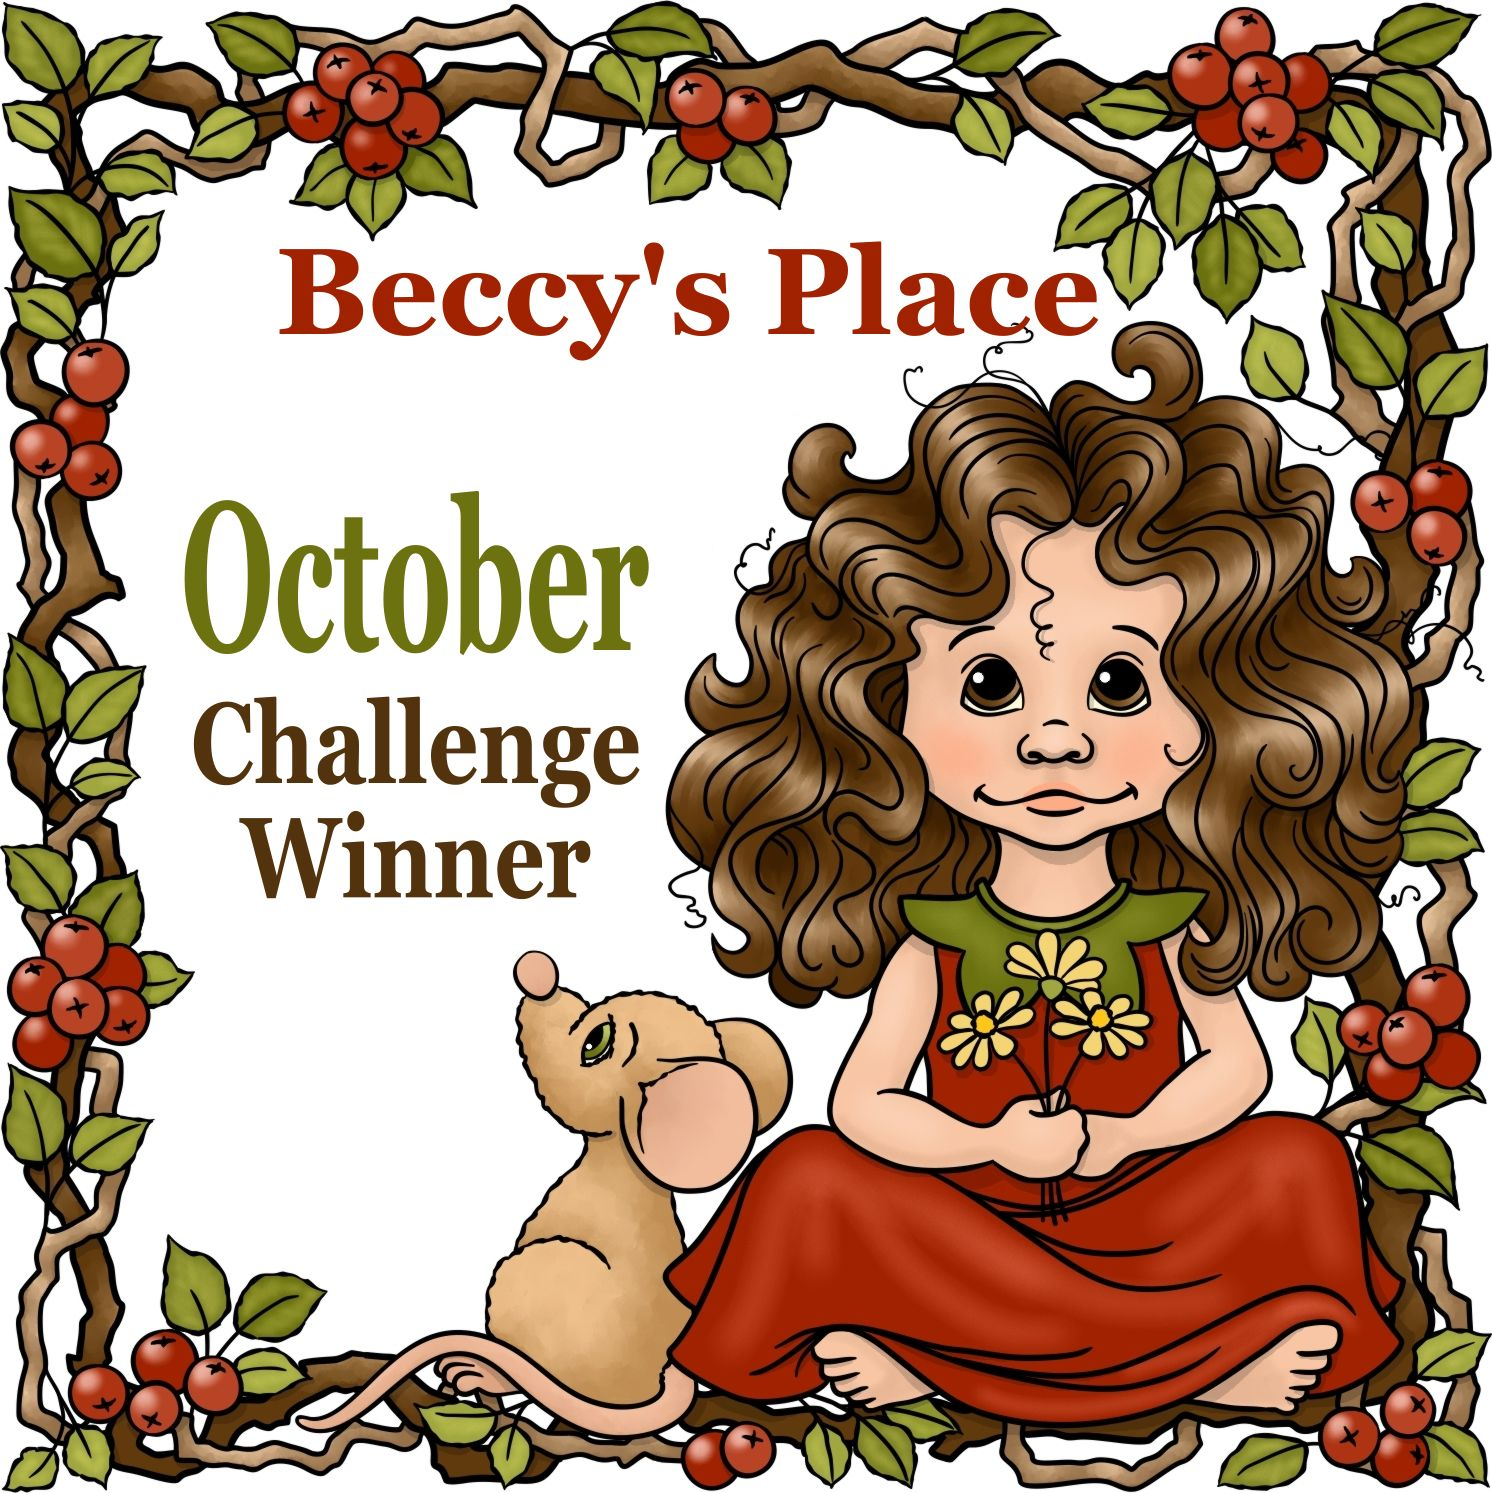 October Challenge winner at Beccy's Place